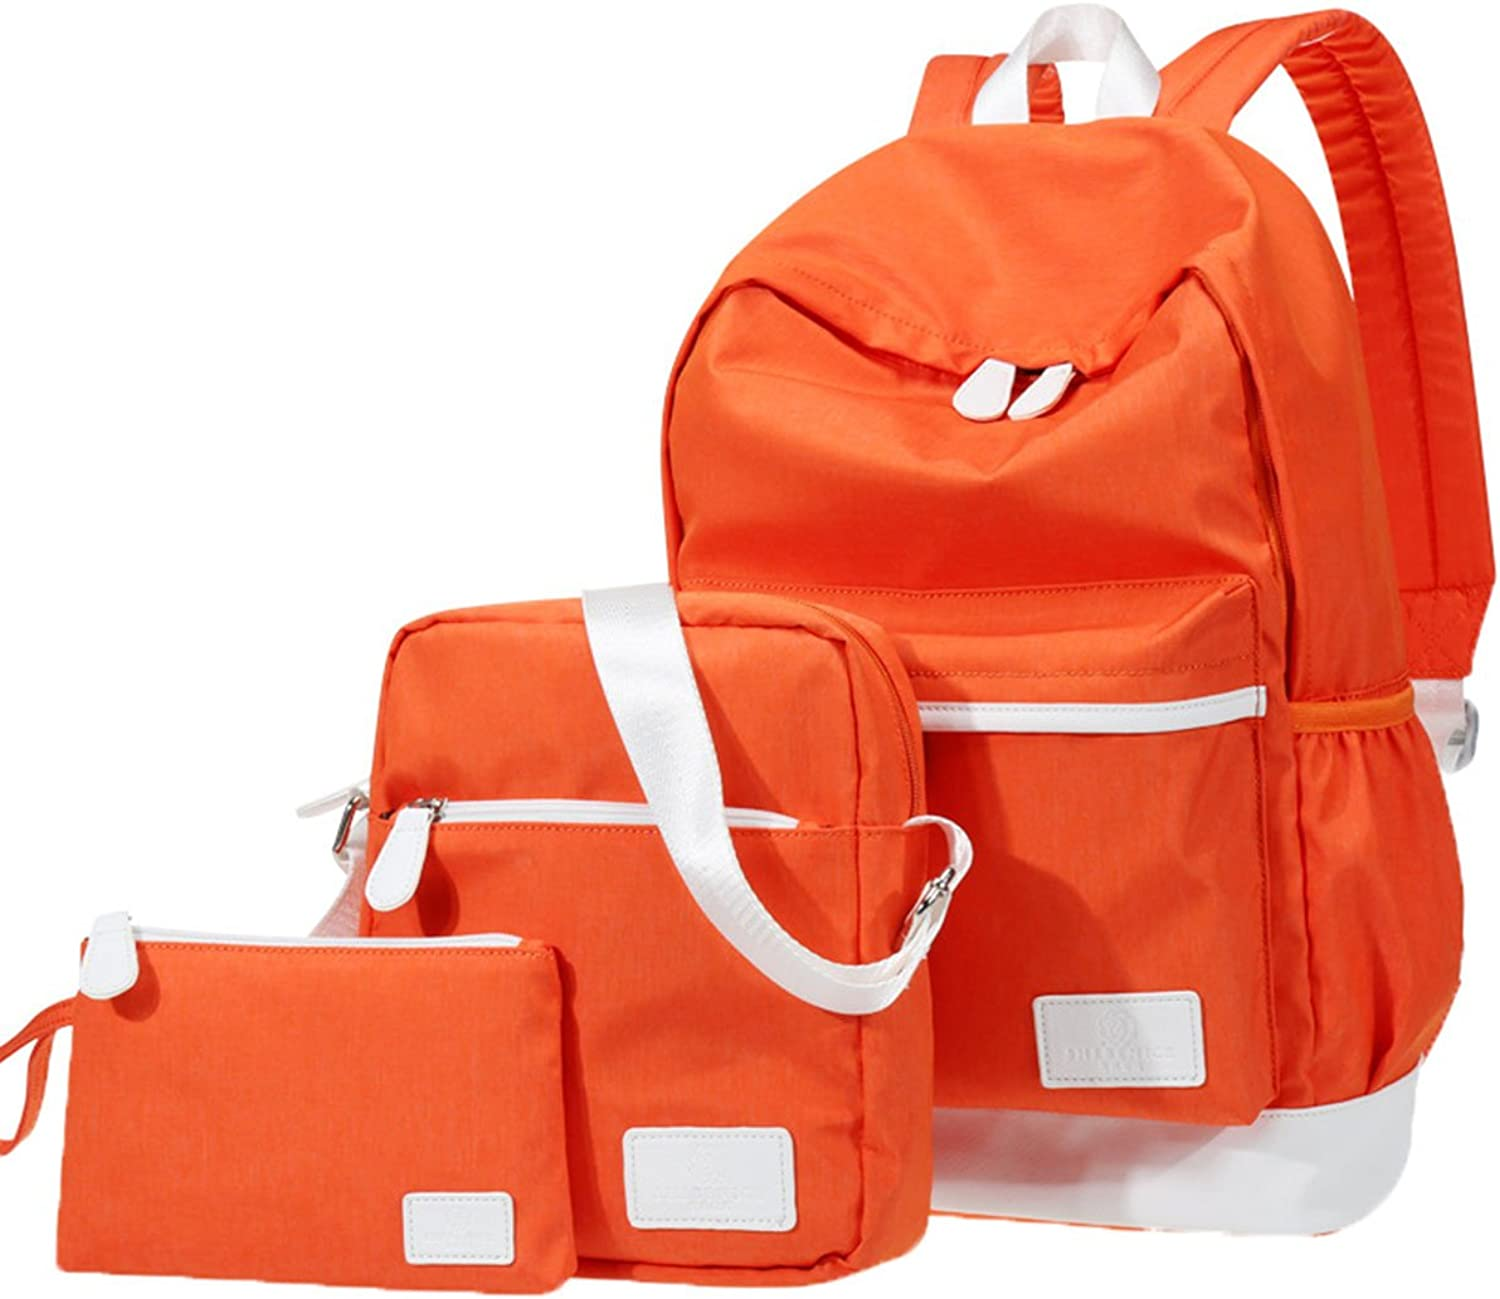 Backpack Canvas Pure color Preppy Style Fashion Causal 4 Sets Teens School Bag orange Set3 281544cm 11.03 5.91 17.34